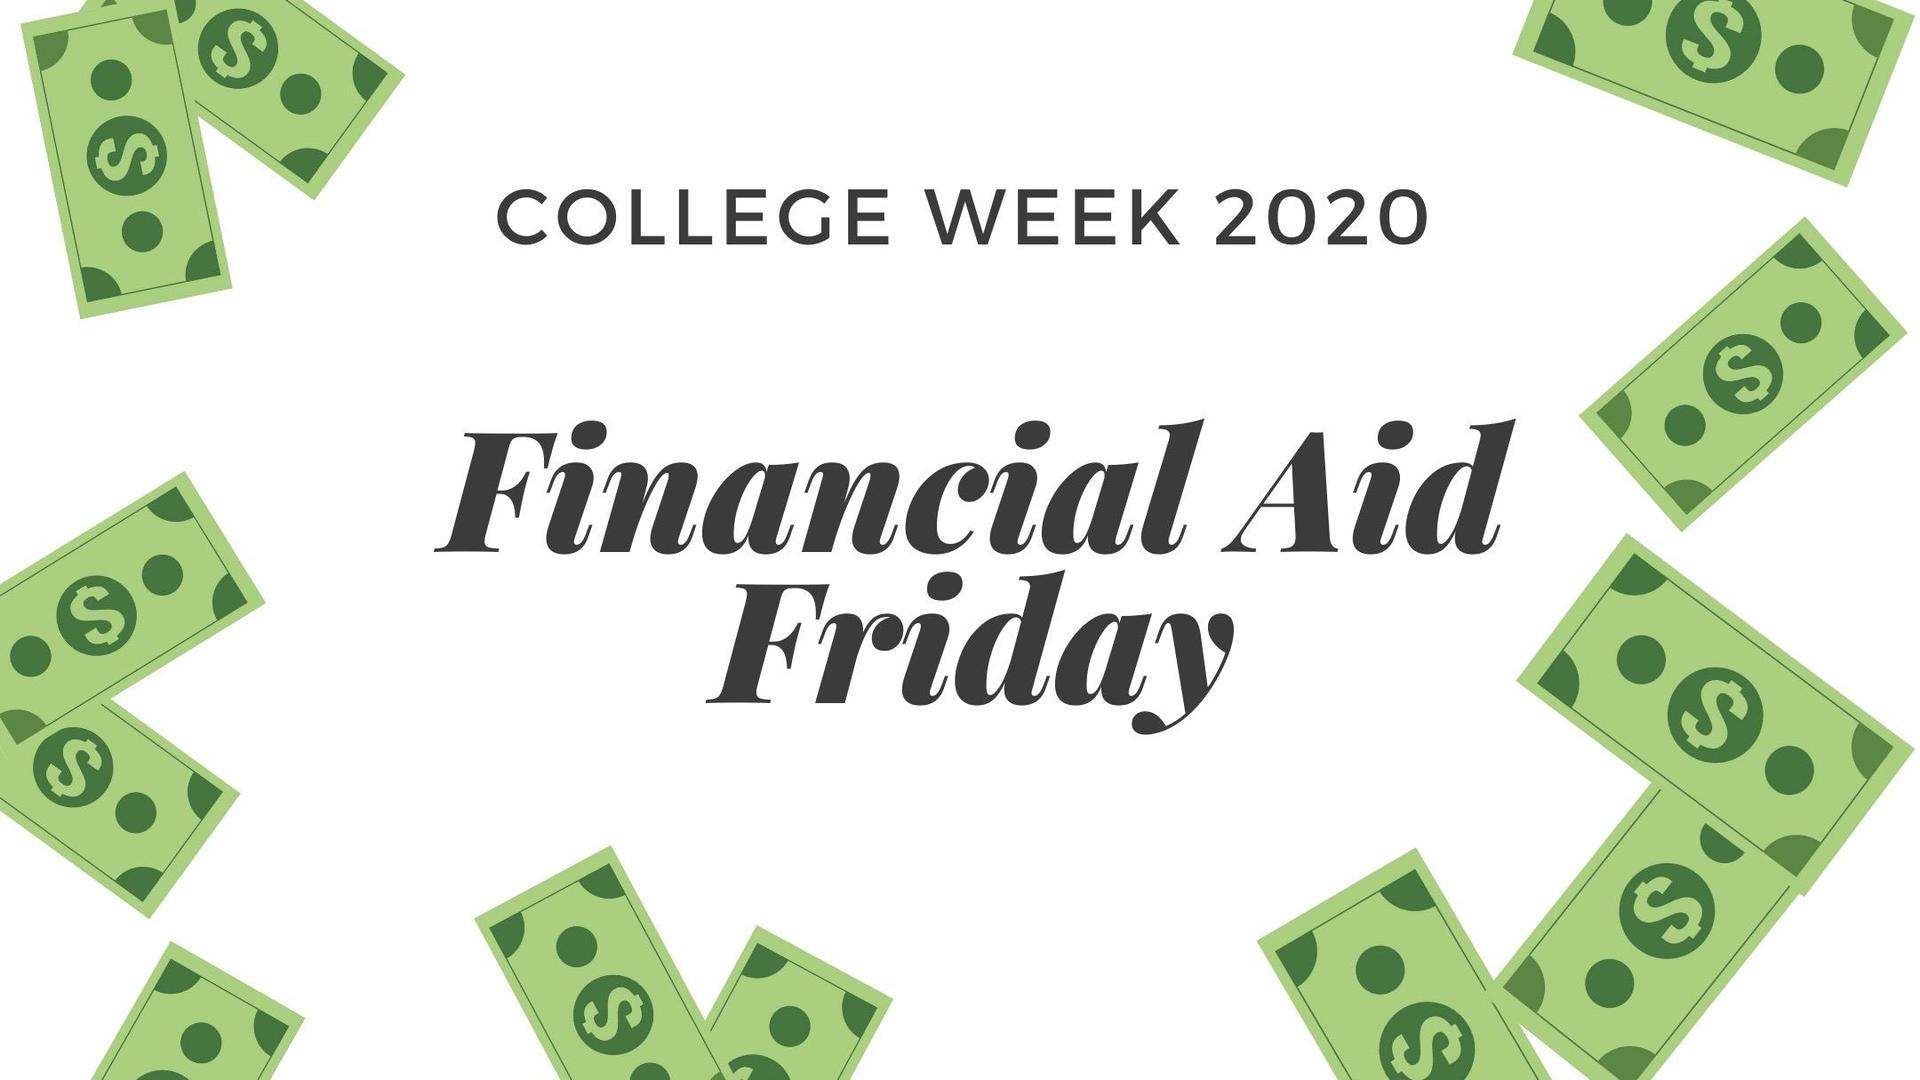 Financial Aid Friday